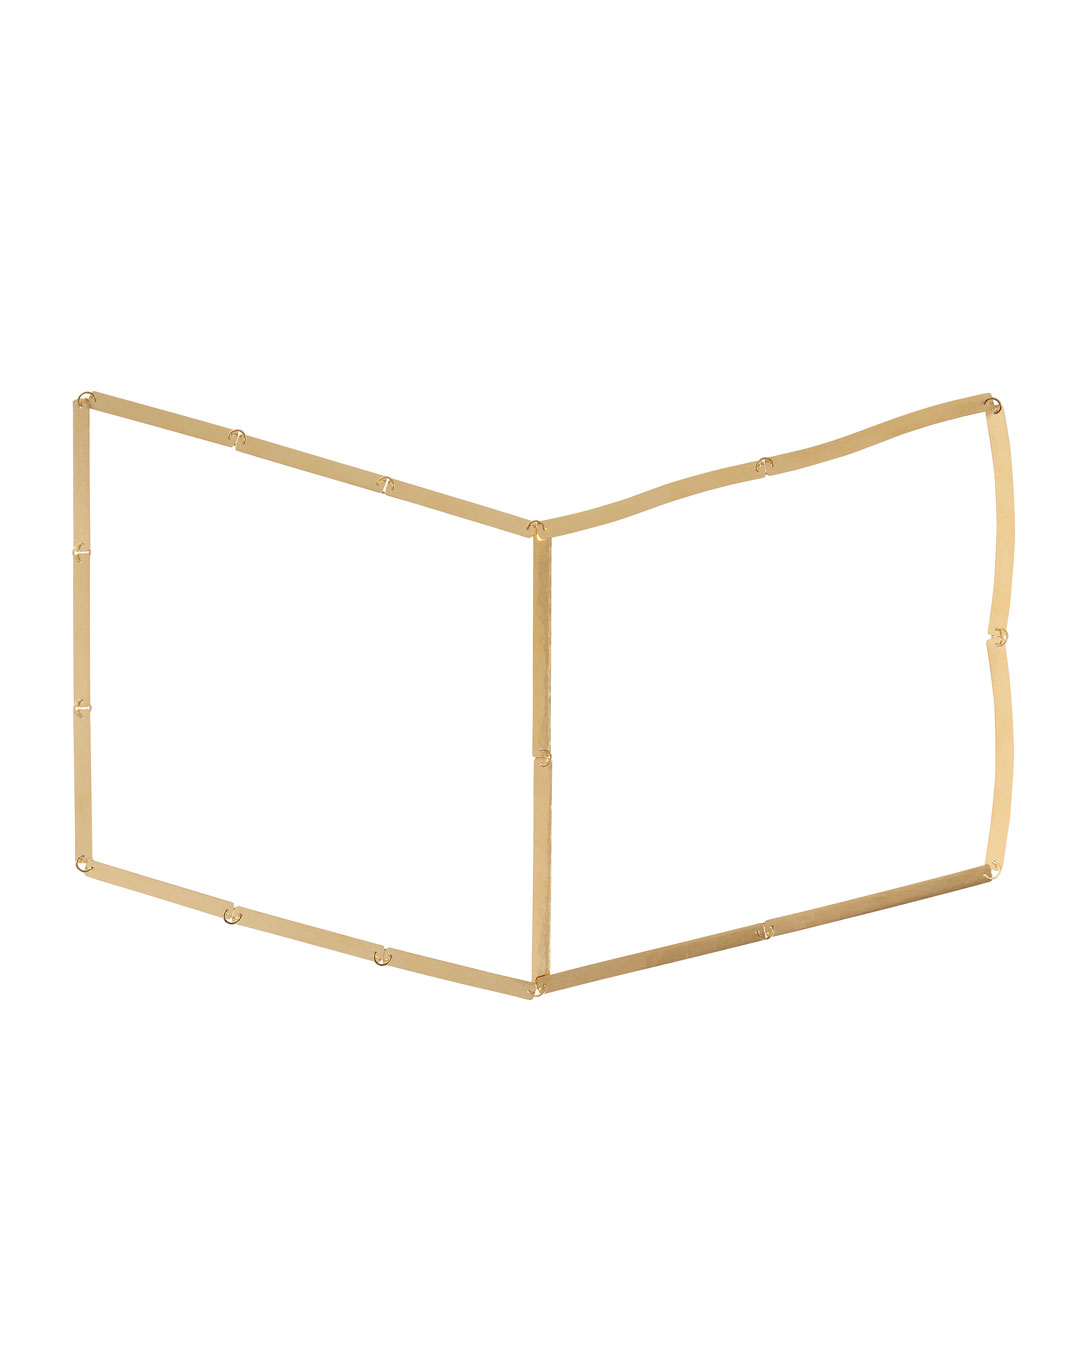 Annelies Planteijdt, Mooie stad – Collier en boek (Beautiful City - Necklace and Book) , 2017, necklace; gold, 360 x 240 mm, price on request (image 1/3)